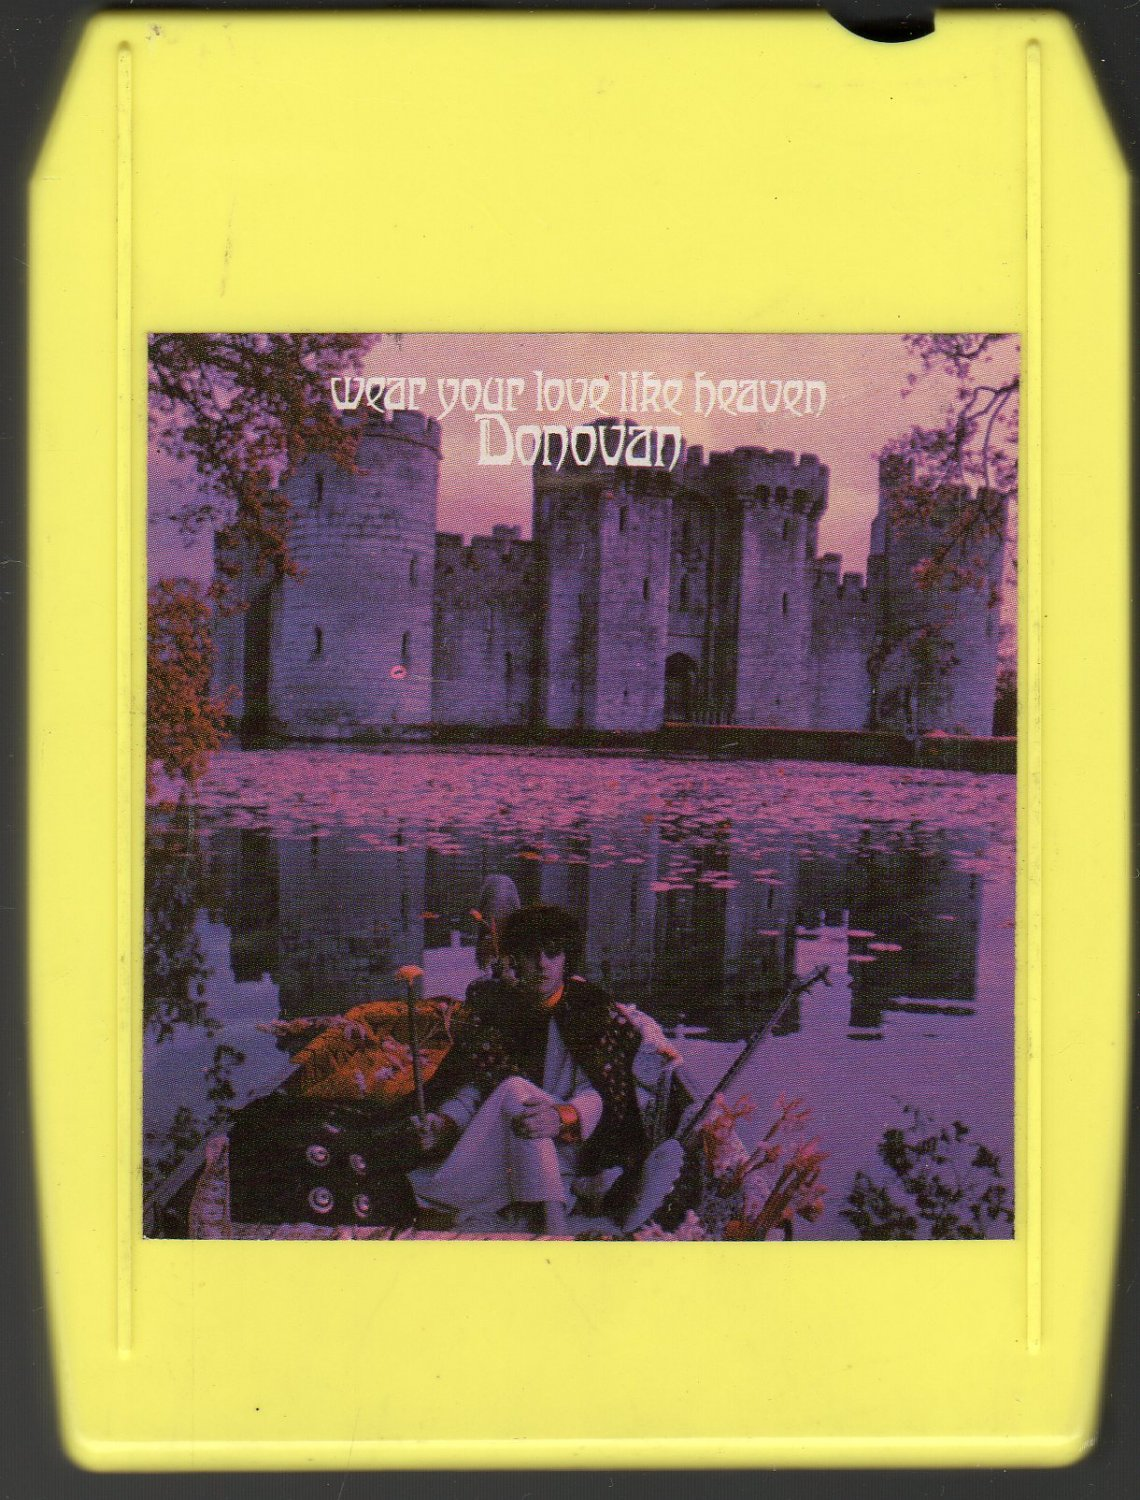 Donovan - Wear Your Love Like Heaven 1967 EPIC A49 8-track tape